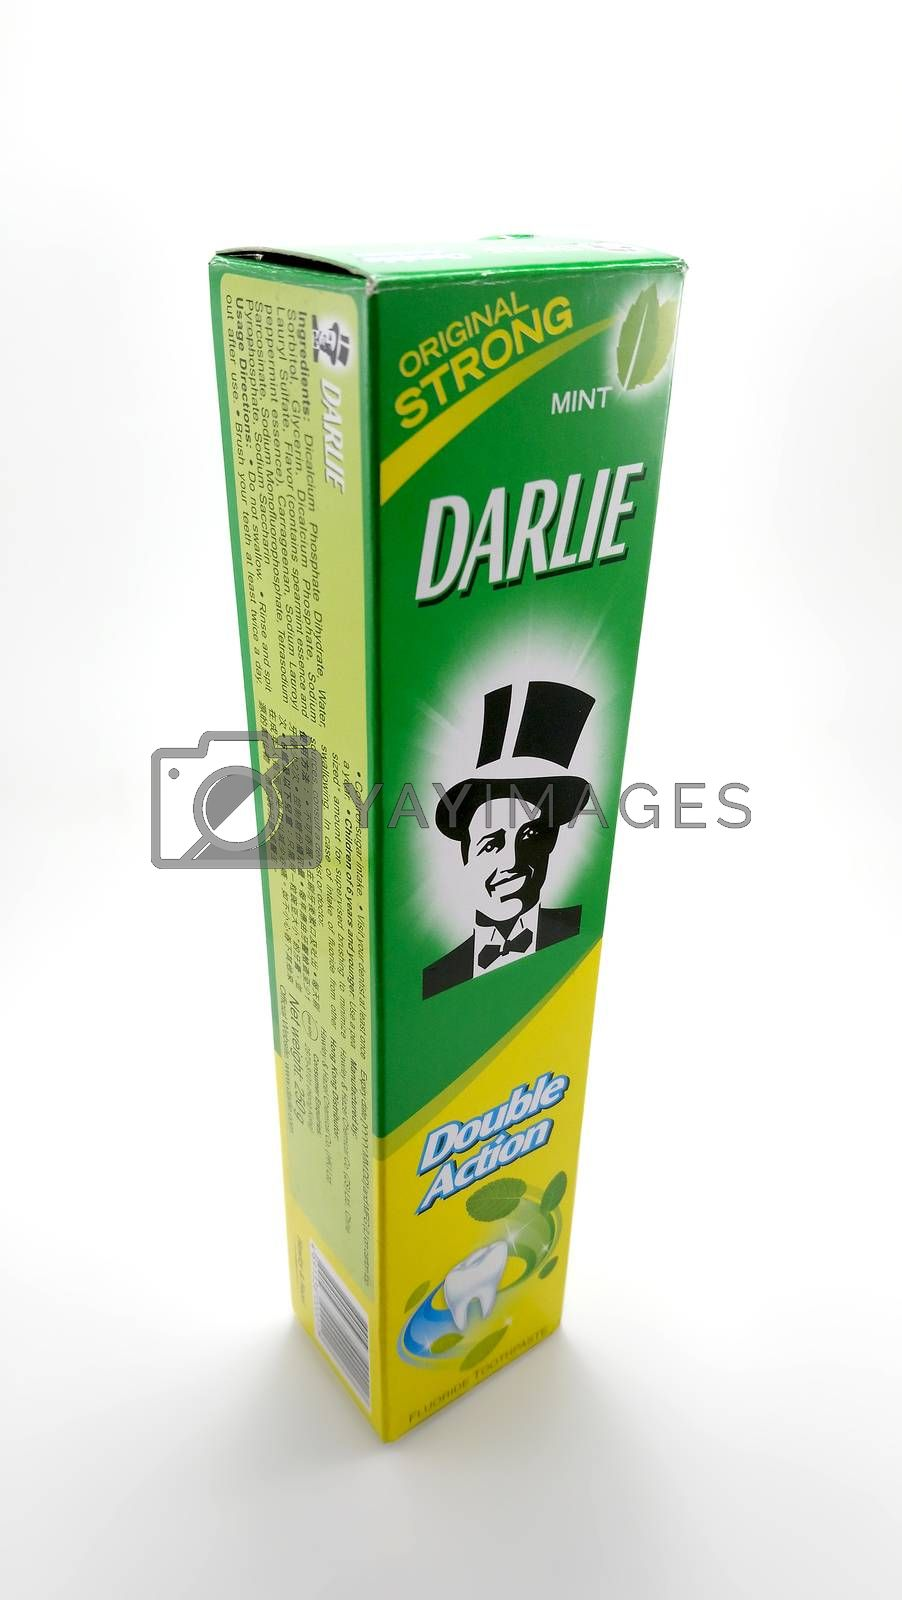 Darlie mint original strong toothpaste in Manila, Philippines by imwaltersy